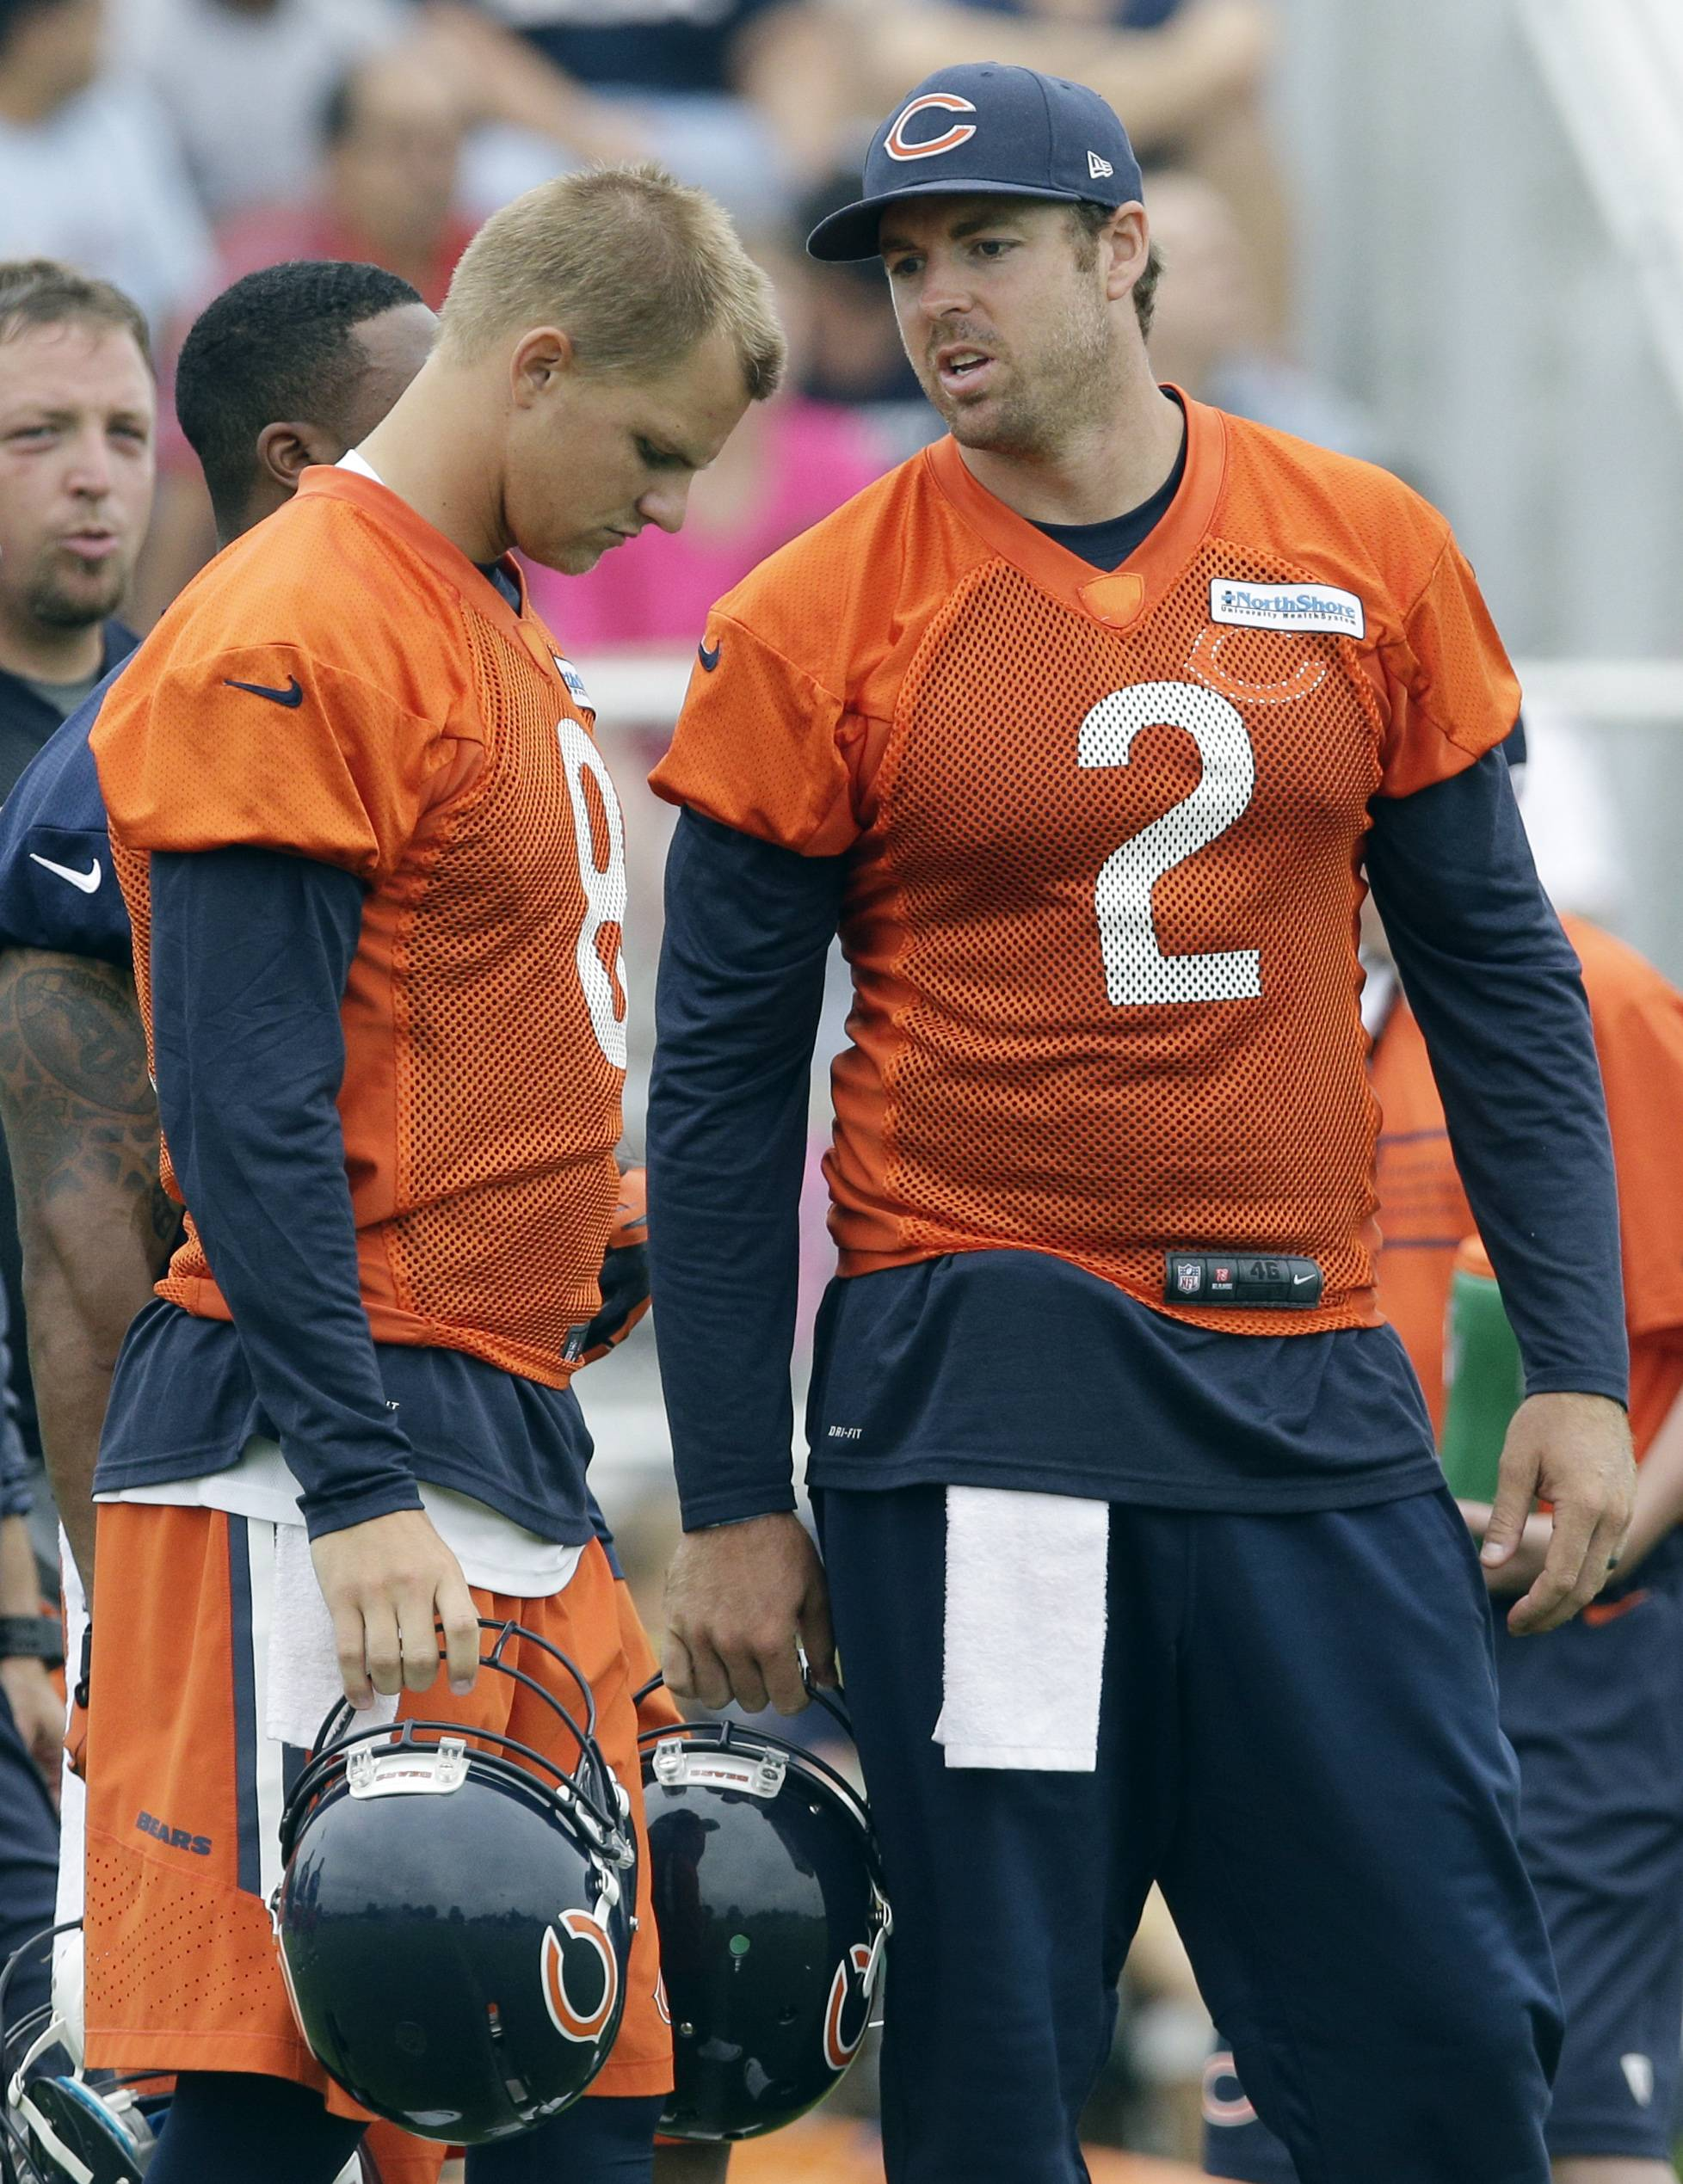 Quarterbacks Jimmy Clausen, left, Jordan Palmer are expected to see plenty of action Friday when the Bears host the Eagles in their preseason opener as they battle for the role of backup to starter Jay Cutler.